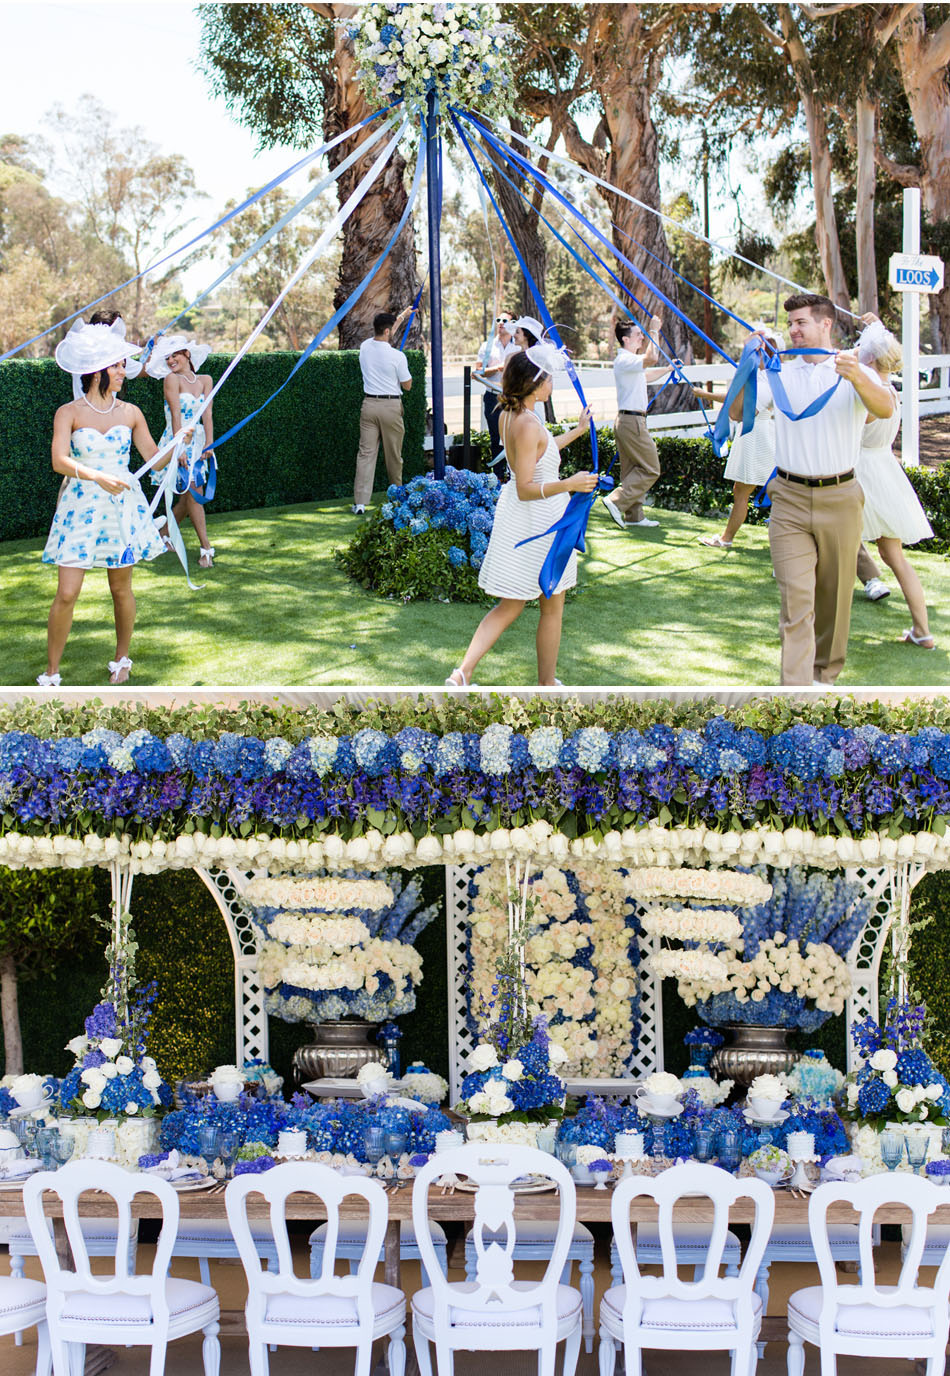 internationaleventcompany.com | International Event Company Los Angeles Wedding Planner and Designer | Birthday Parties and Baby Showers at The Will Rogers Polo Field | Luxury Event Planners in Southern California _ (1).jpg